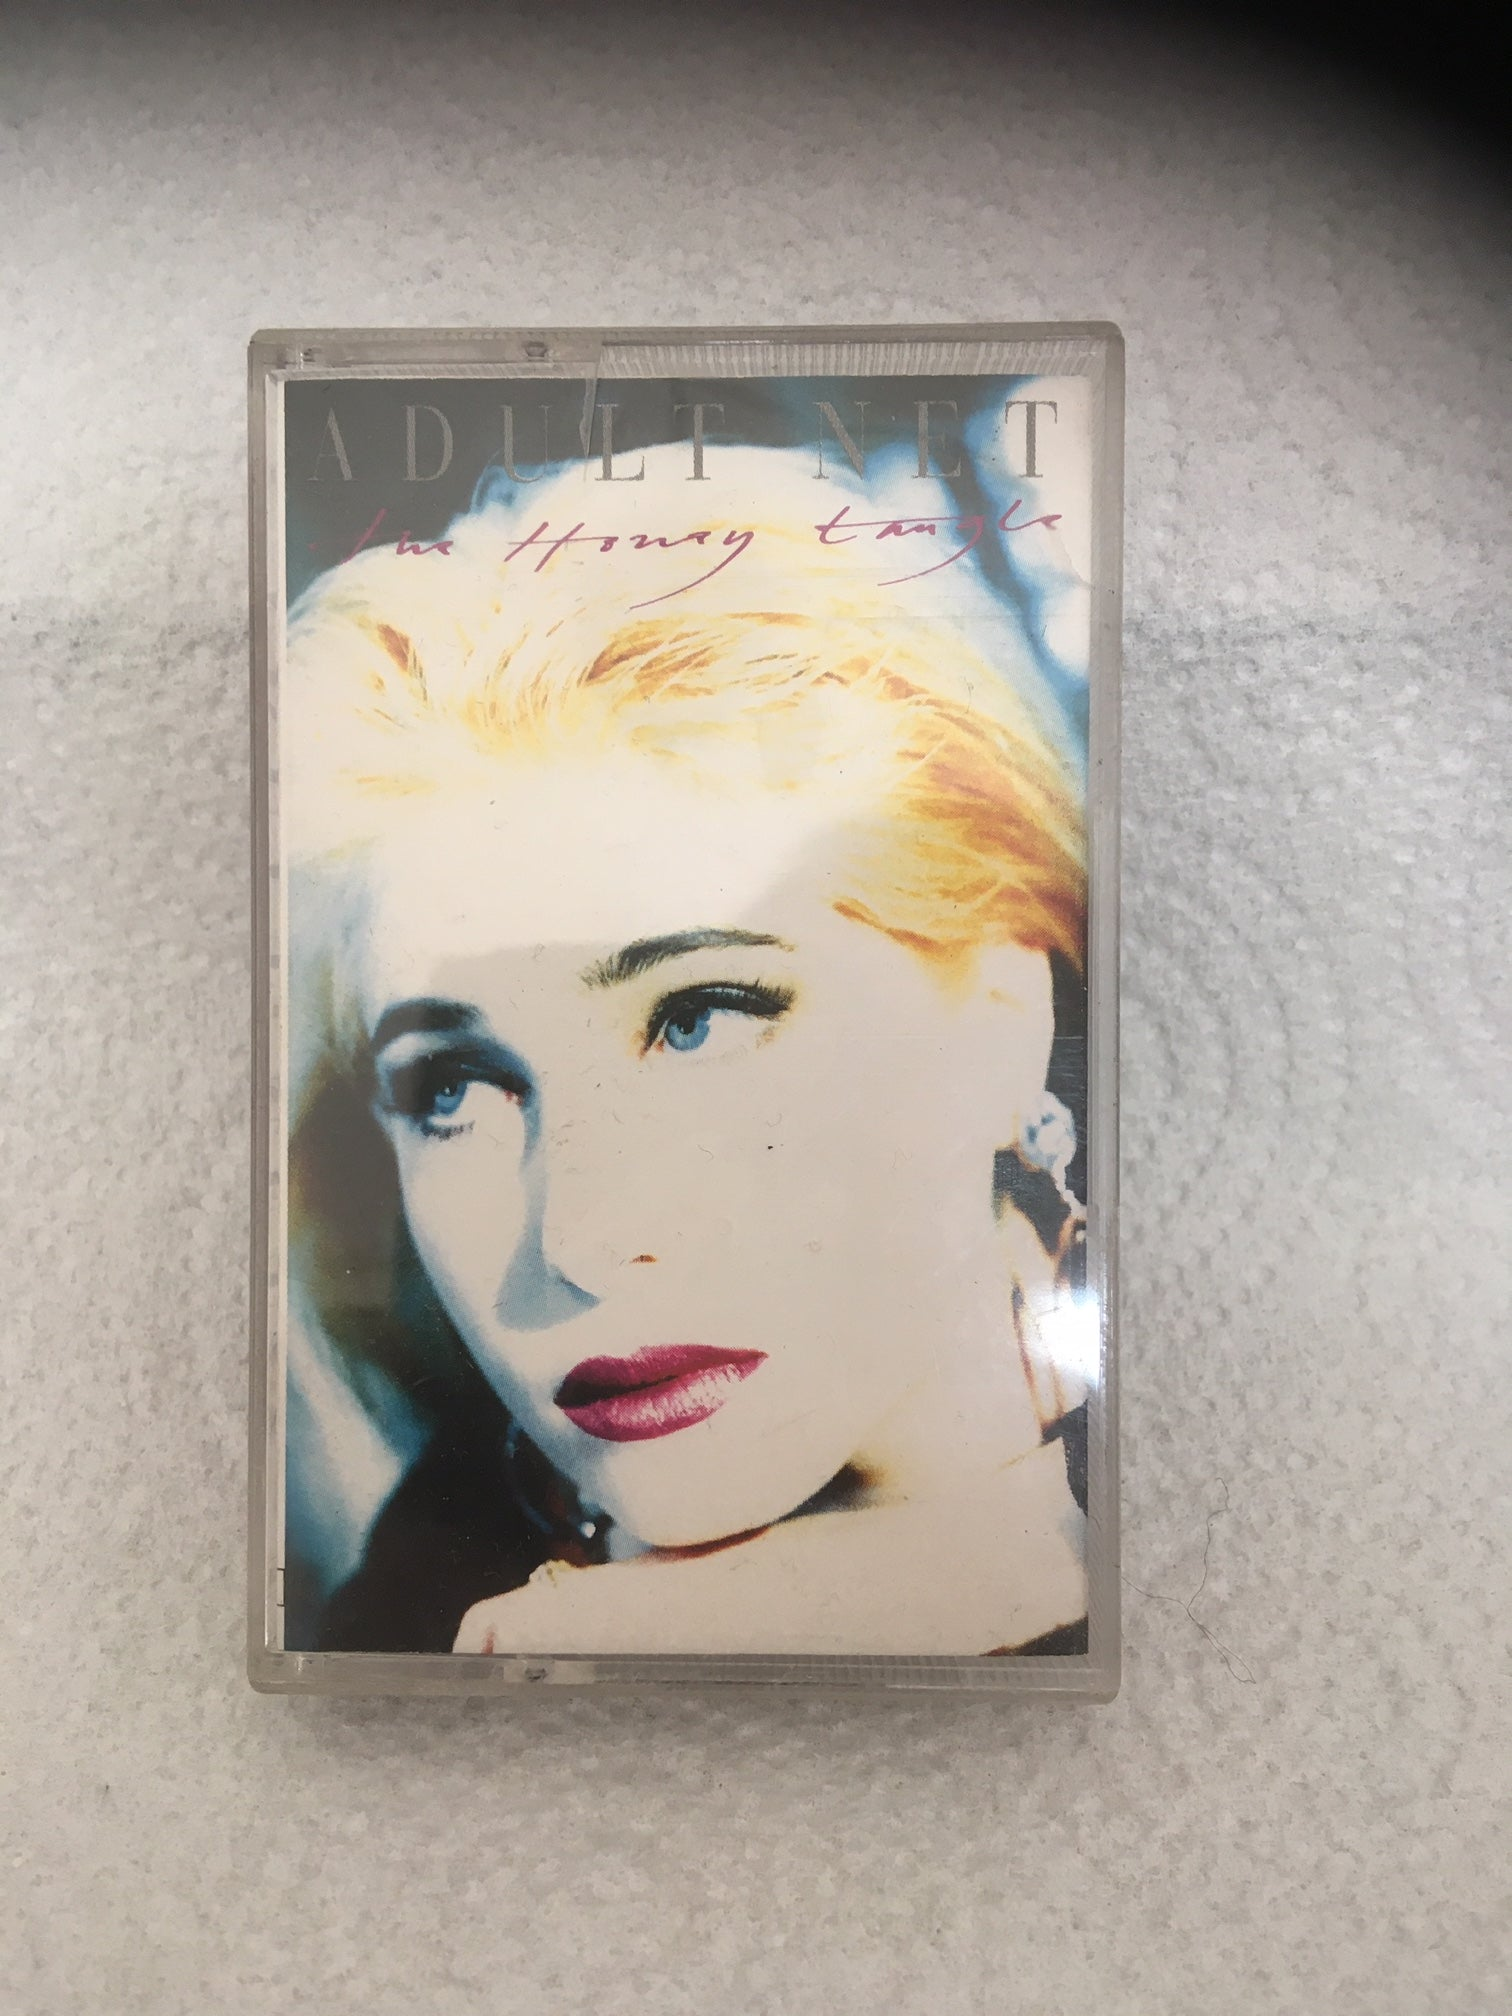 Adult Net - Honey Tangle - Cassette